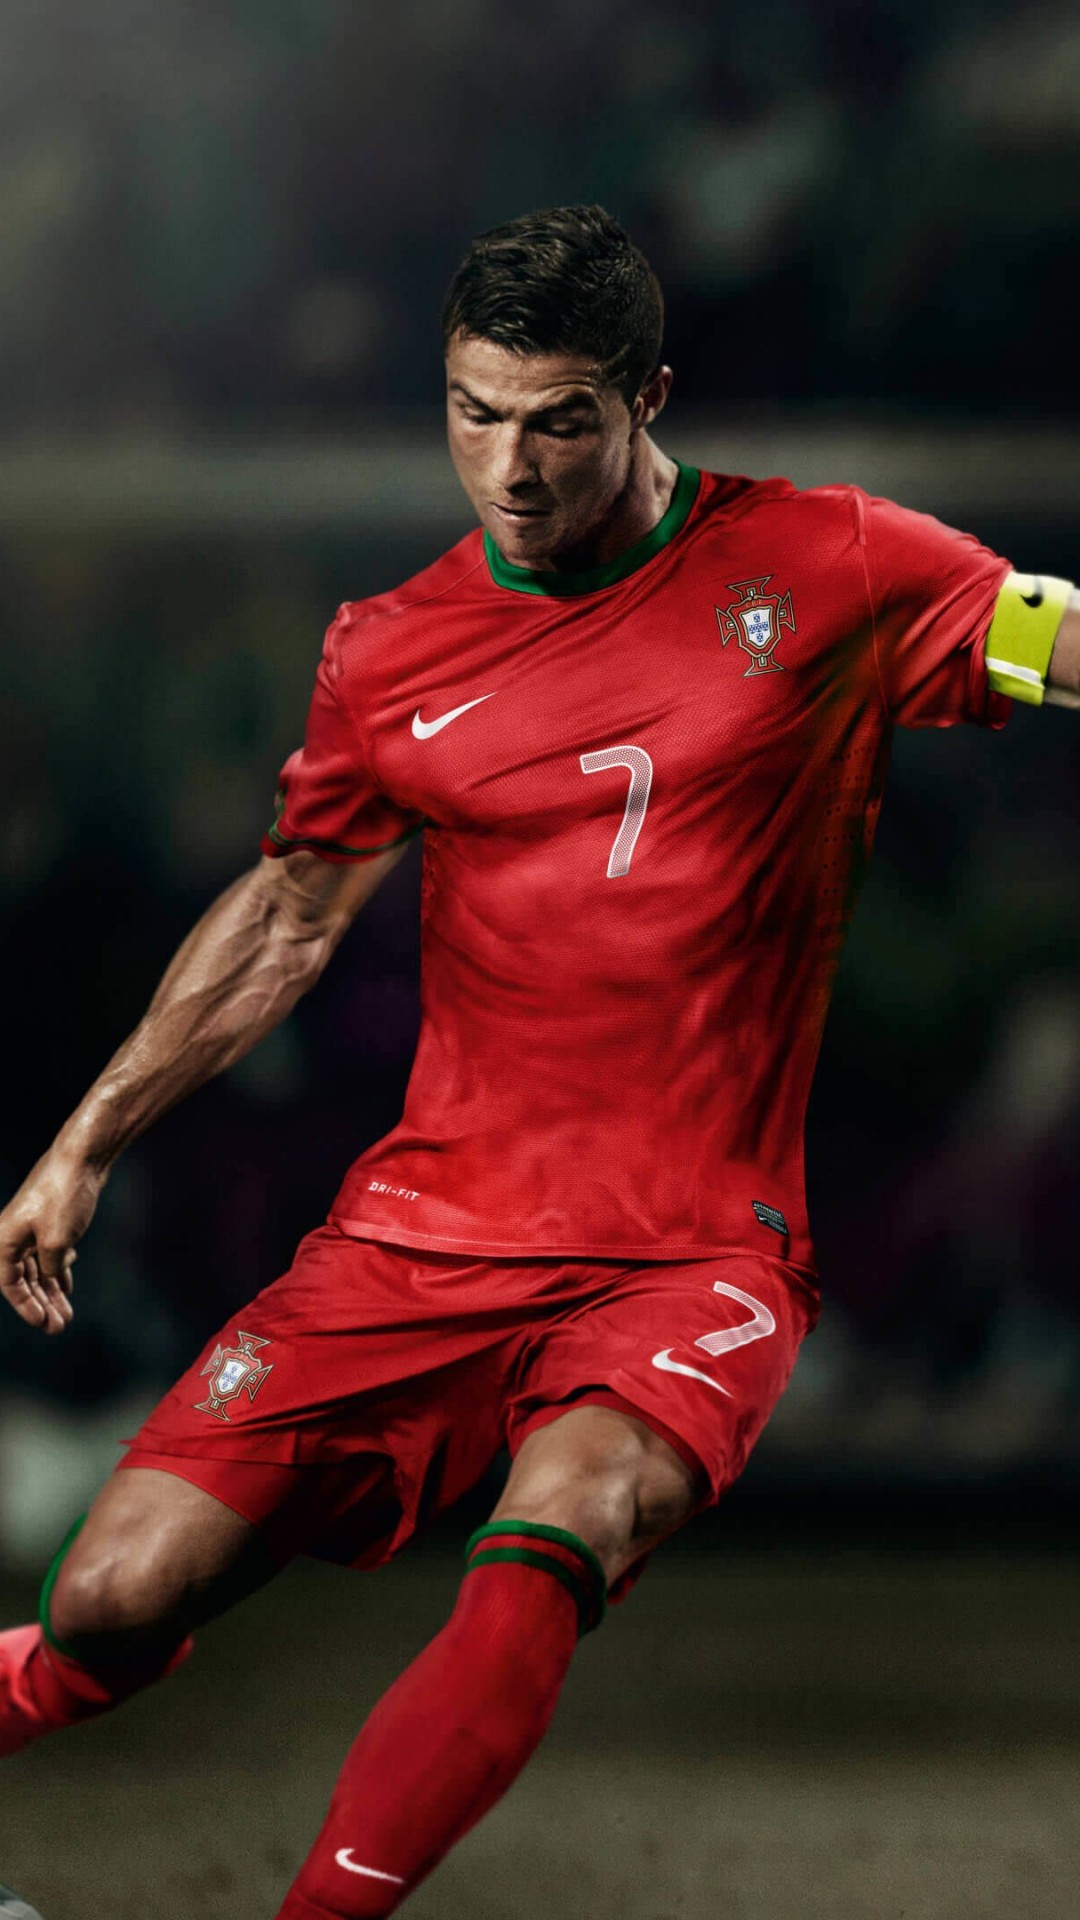 Cristiano Ronaldo In Portugal Jersey Wallpaper for SONY Xperia Z3